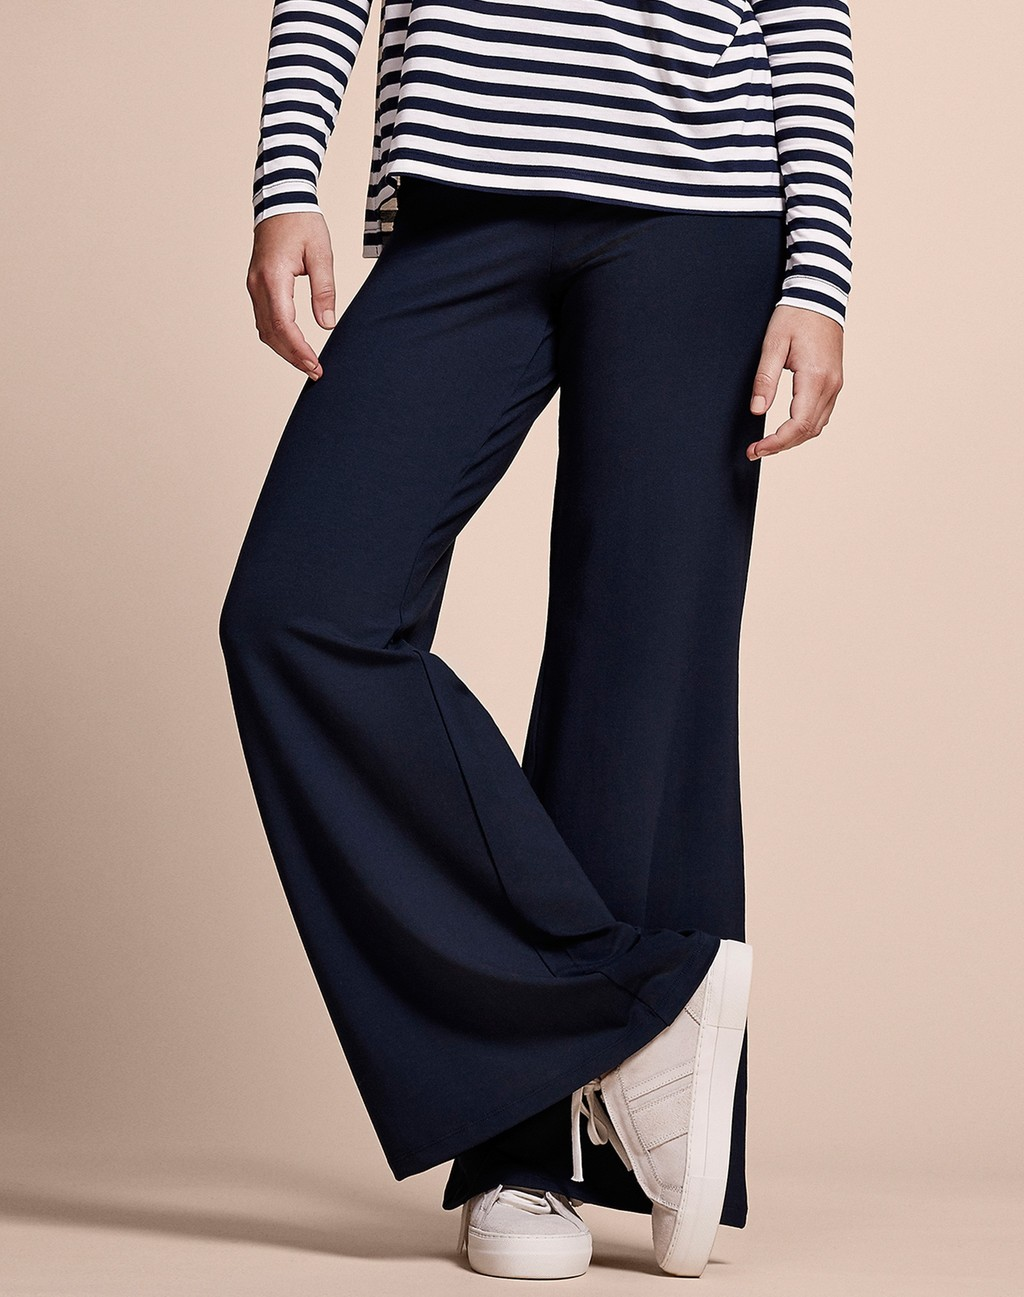 Palazzo Pants Navy - length: standard; pattern: plain; waist: mid/regular rise; predominant colour: navy; occasions: casual; fibres: polyester/polyamide - stretch; fit: wide leg; pattern type: fabric; texture group: jersey - stretchy/drapey; style: standard; season: s/s 2016